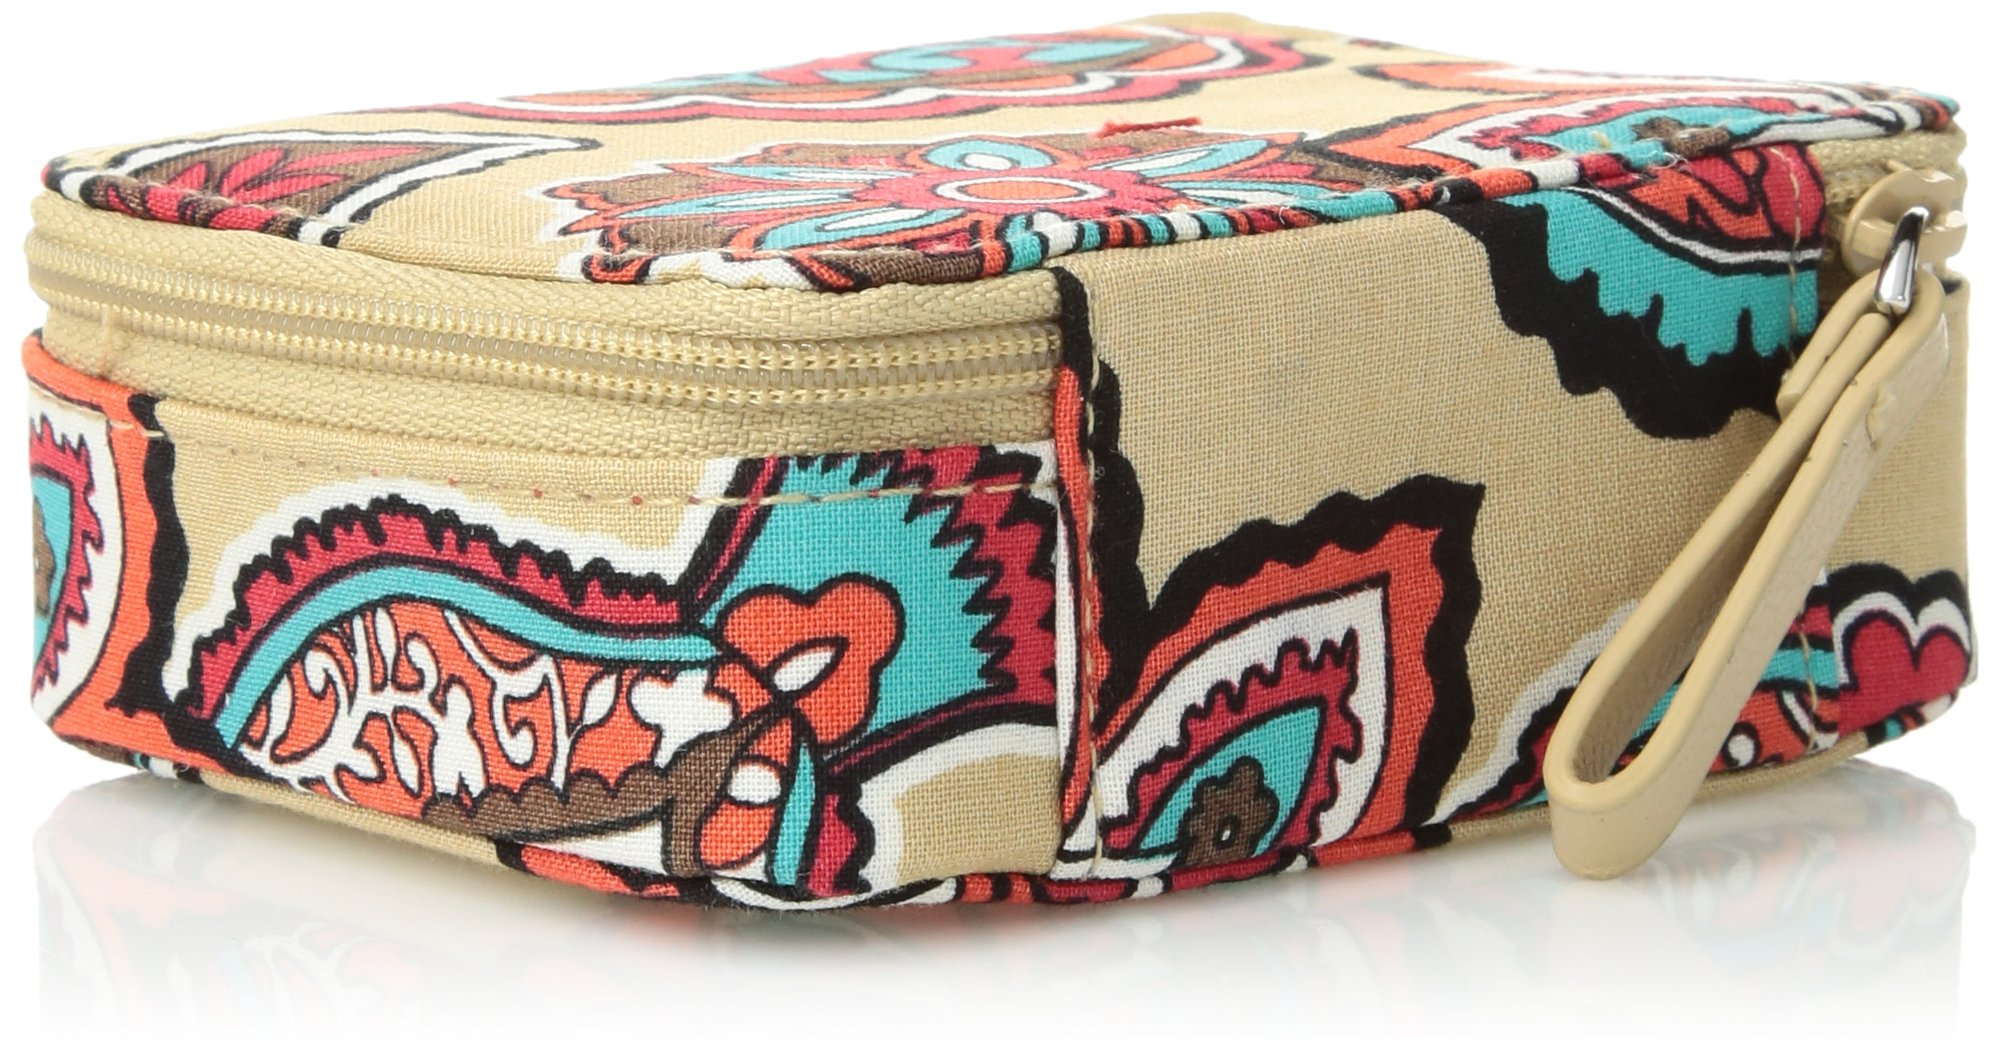 Vera Bradley Iconic Travel Pill Case, Signature Cotton, Desert Floral by Vera Bradley (Image #2)